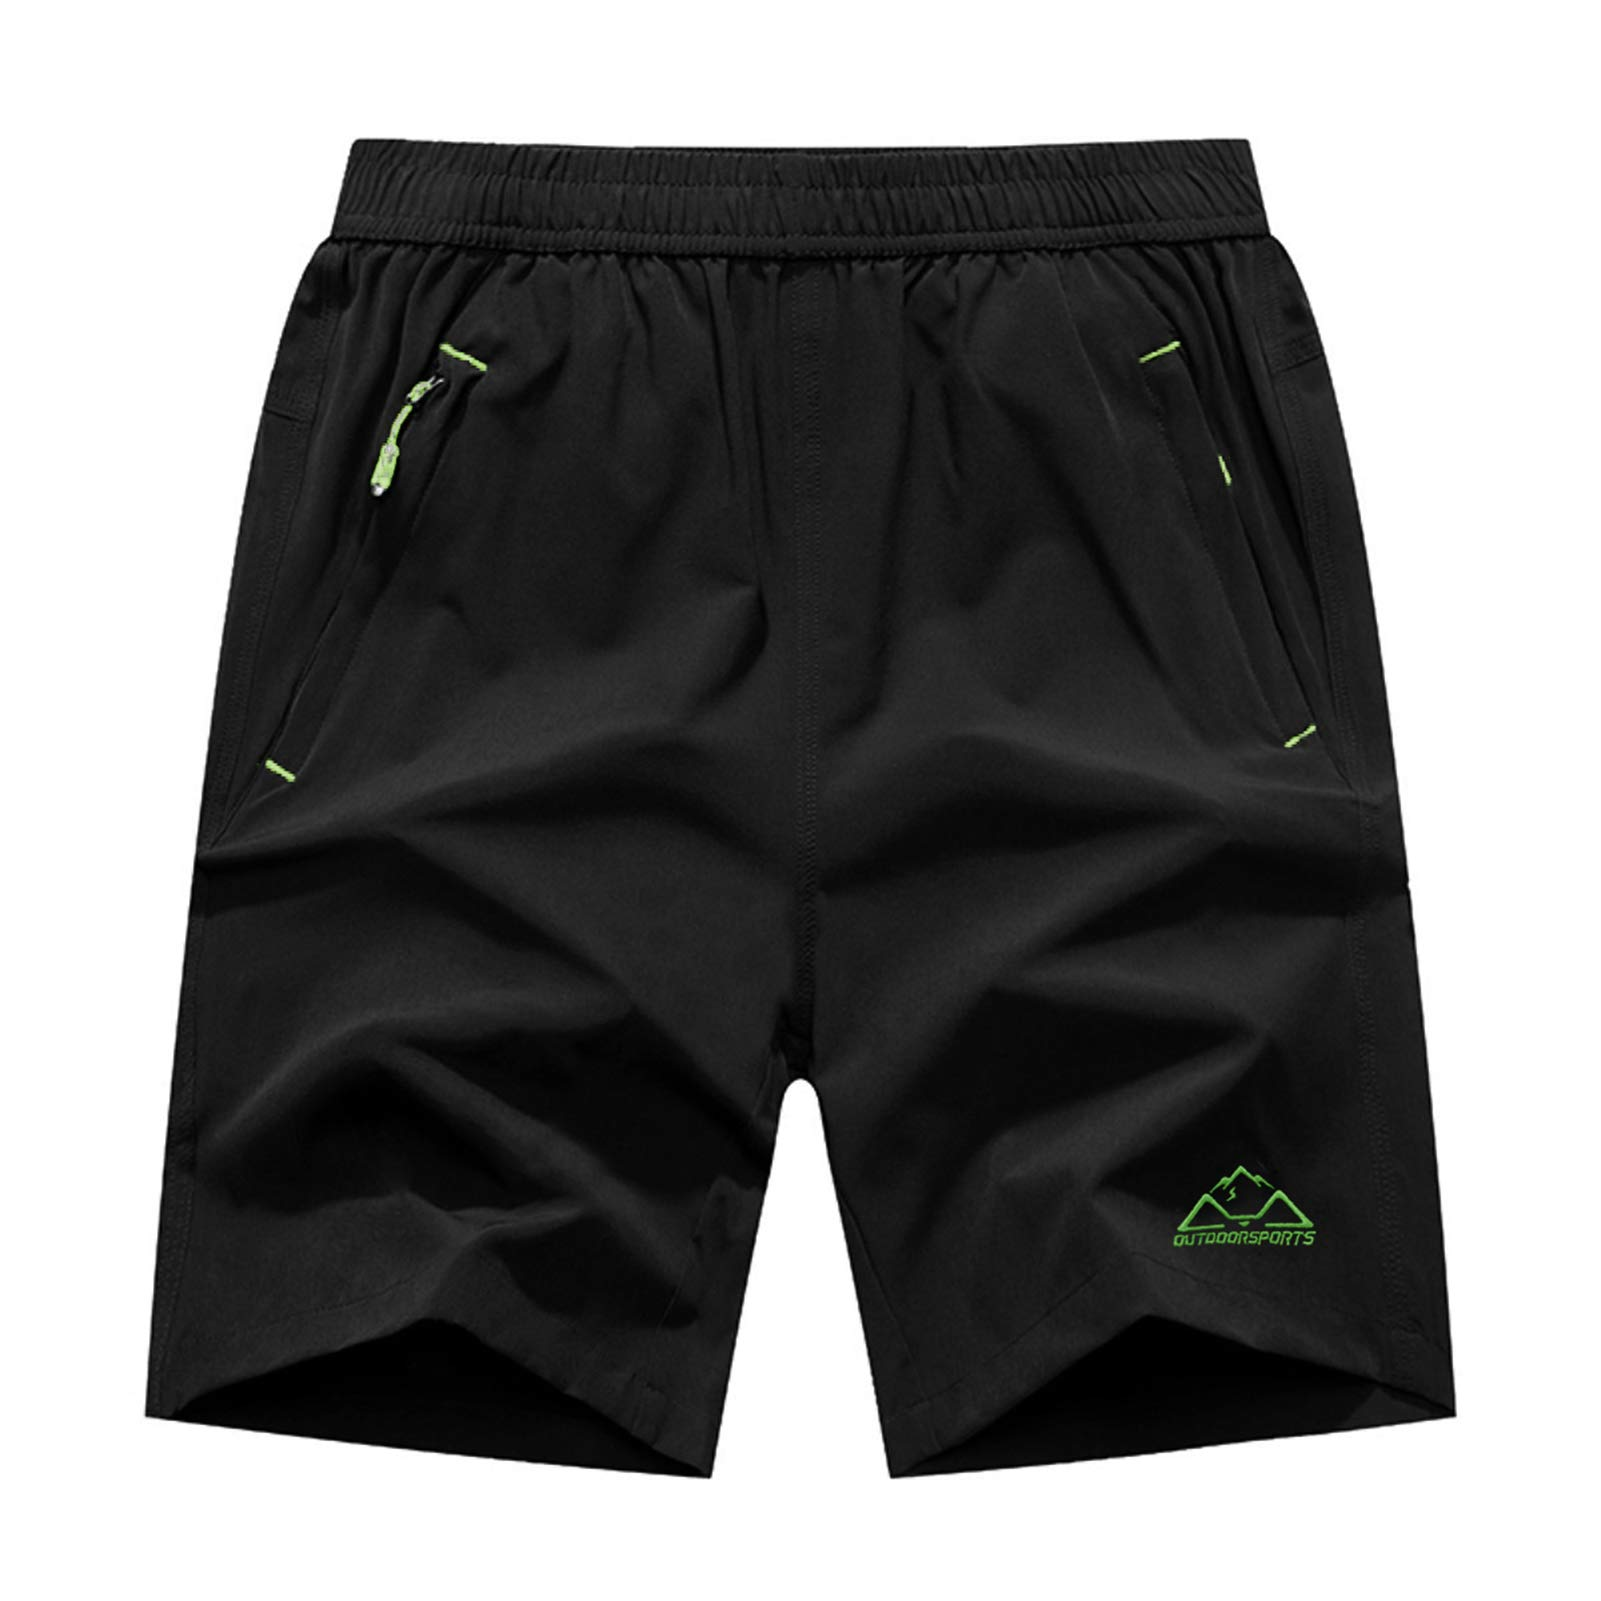 Rdruko Men's Quick Dry Sports Soccer Shorts Lightweight Running Workout Gym Active Shorts with Zipper Pockets